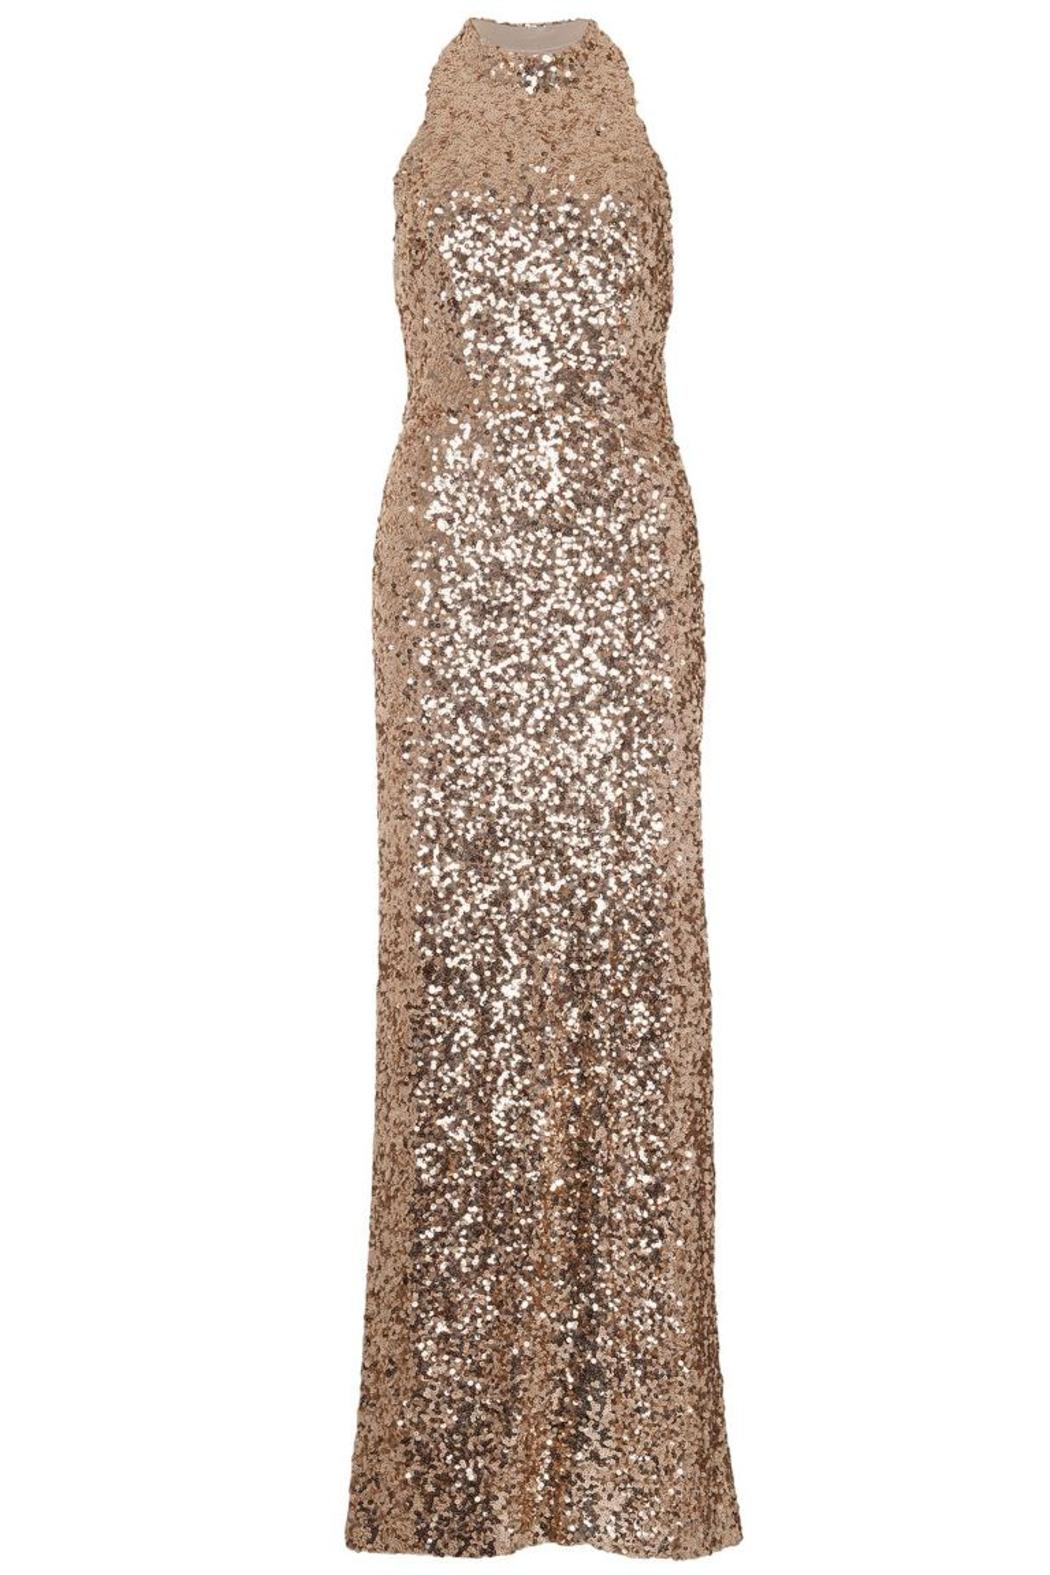 French Connection Lunar Sparkle Gown - Main Image